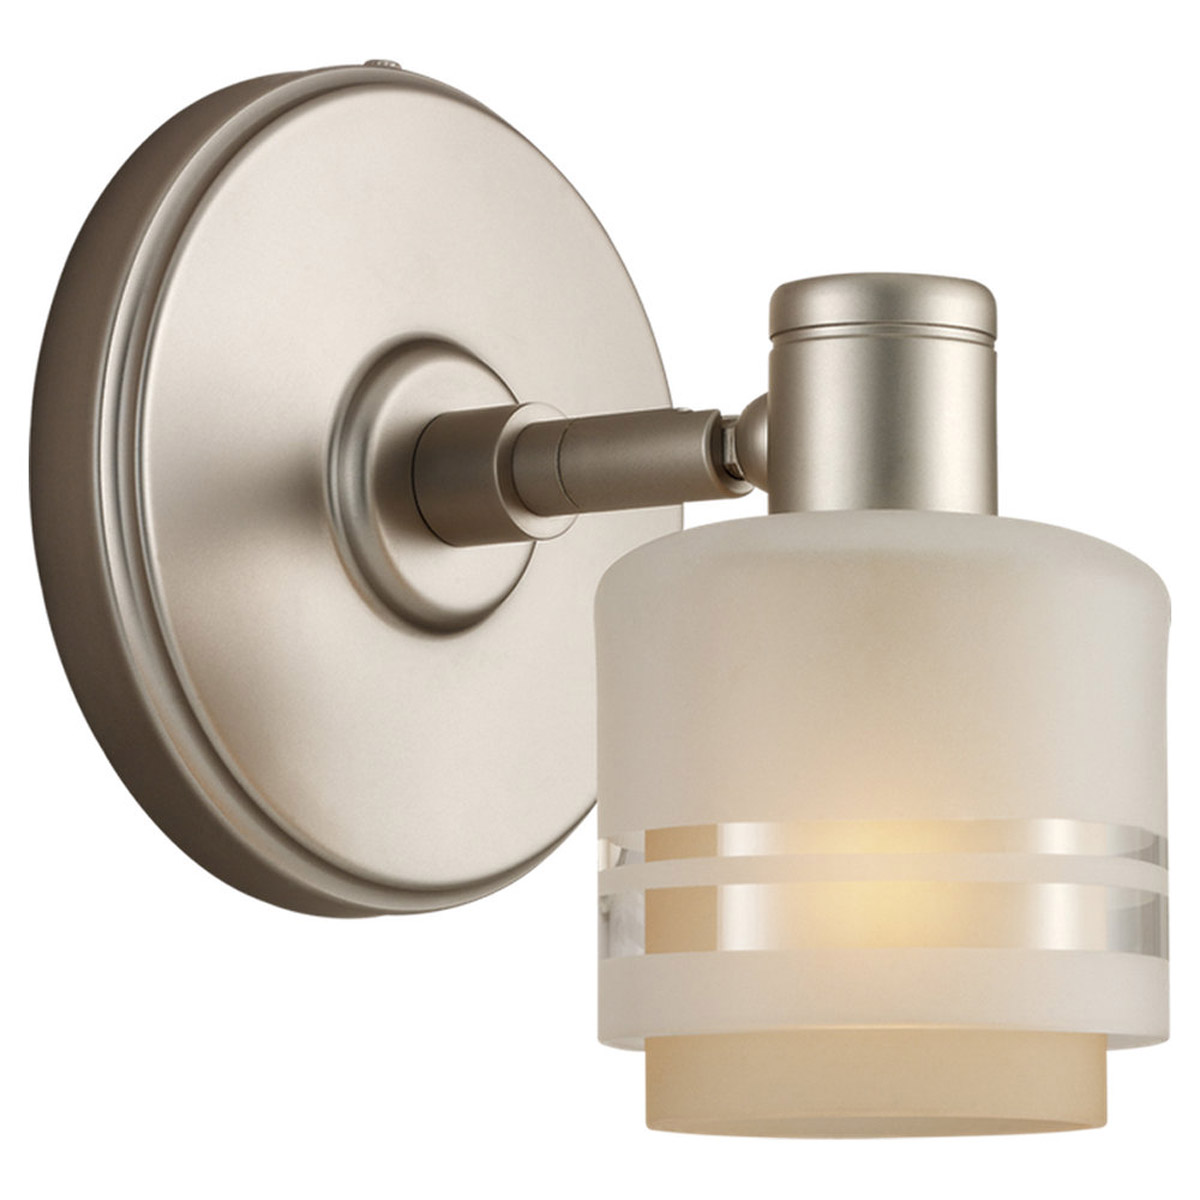 Sea Gull Lighting Groove 1 Light Wall / Bath / Vanity in Golden Pewter 44730-853 photo